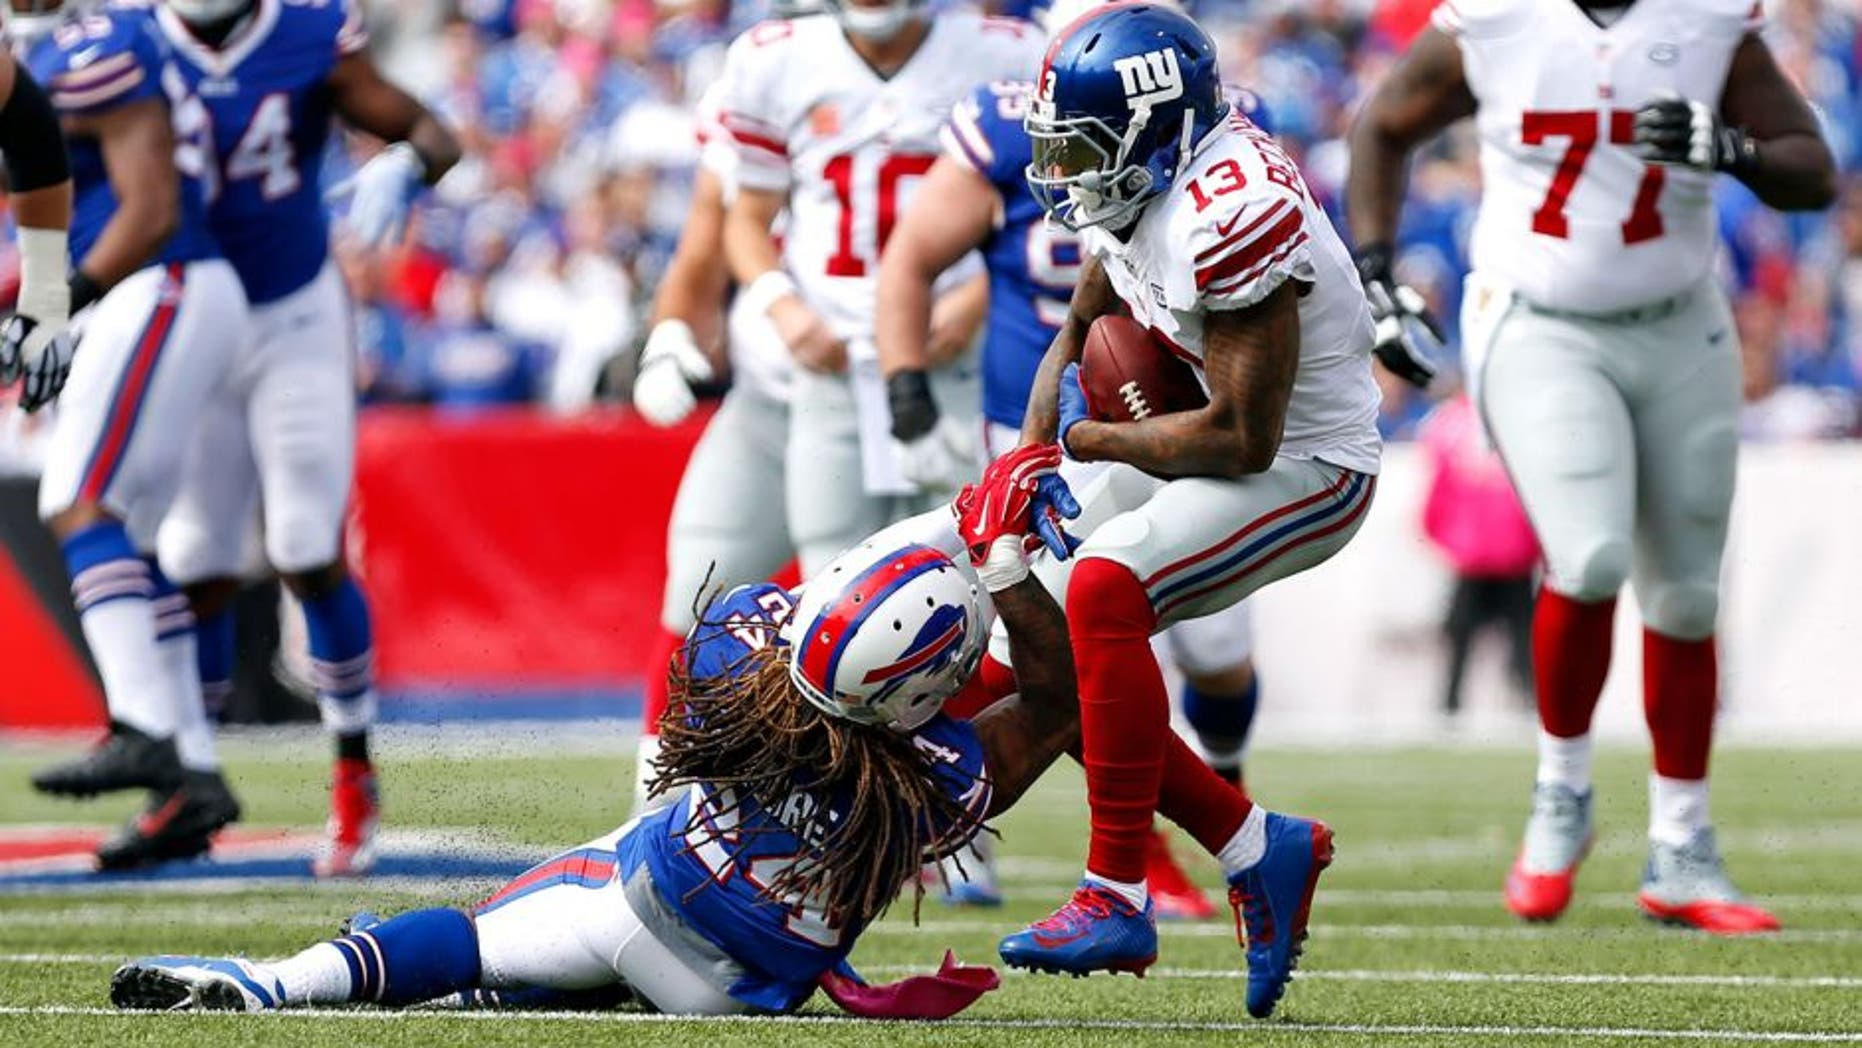 Oct 4, 2015; Orchard Park, NY, USA; New York Giants wide receiver Odell Beckham (13) runs after a catch and is tackled by Buffalo Bills cornerback Stephon Gilmore (24) during the first quarter at Ralph Wilson Stadium. Mandatory Credit: Kevin Hoffman-USA TODAY Sports